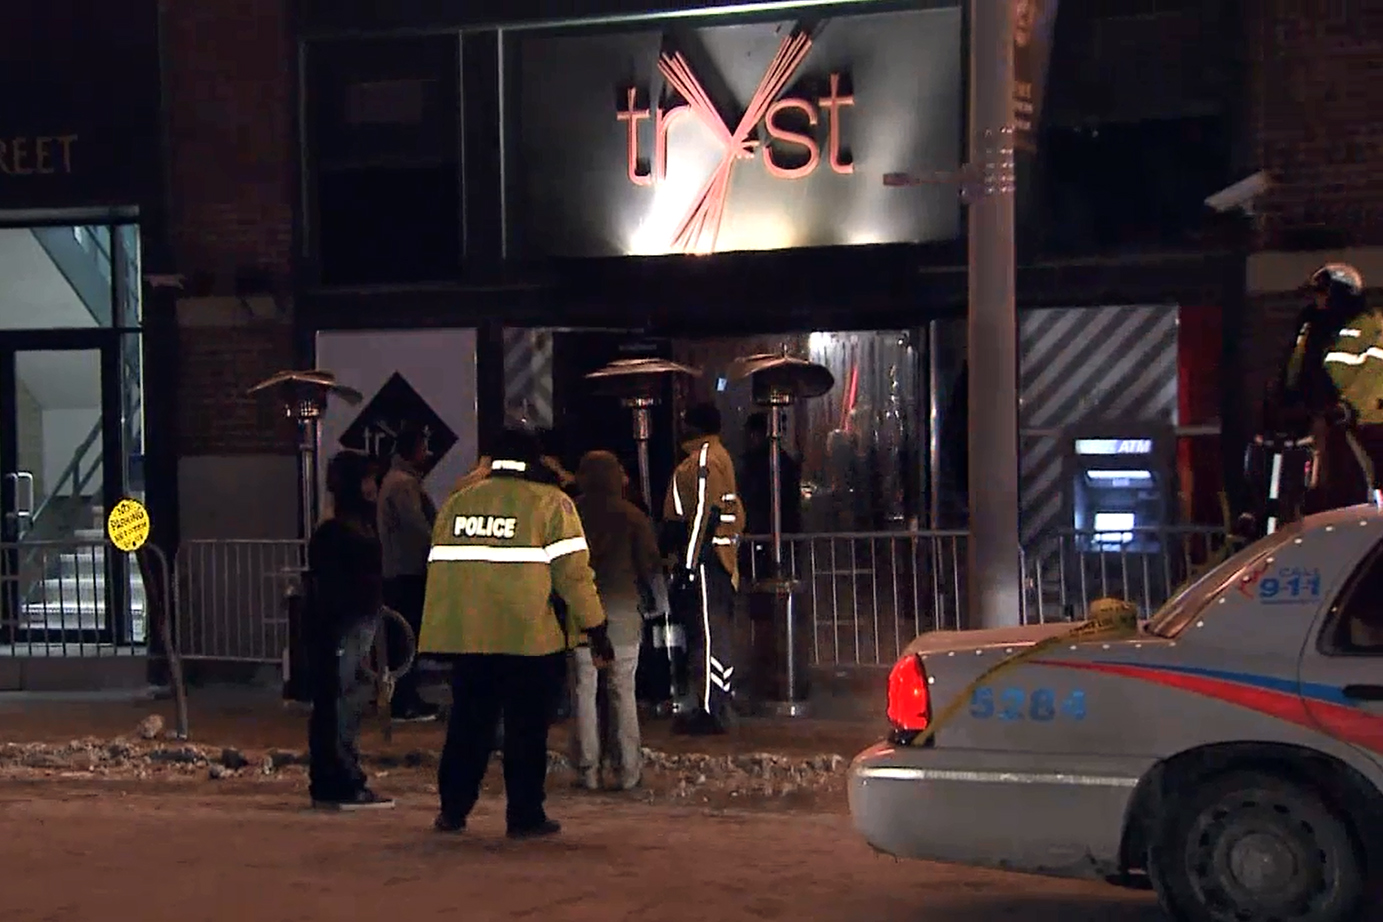 Apologise, but, Tryst nightclub toronto not agree